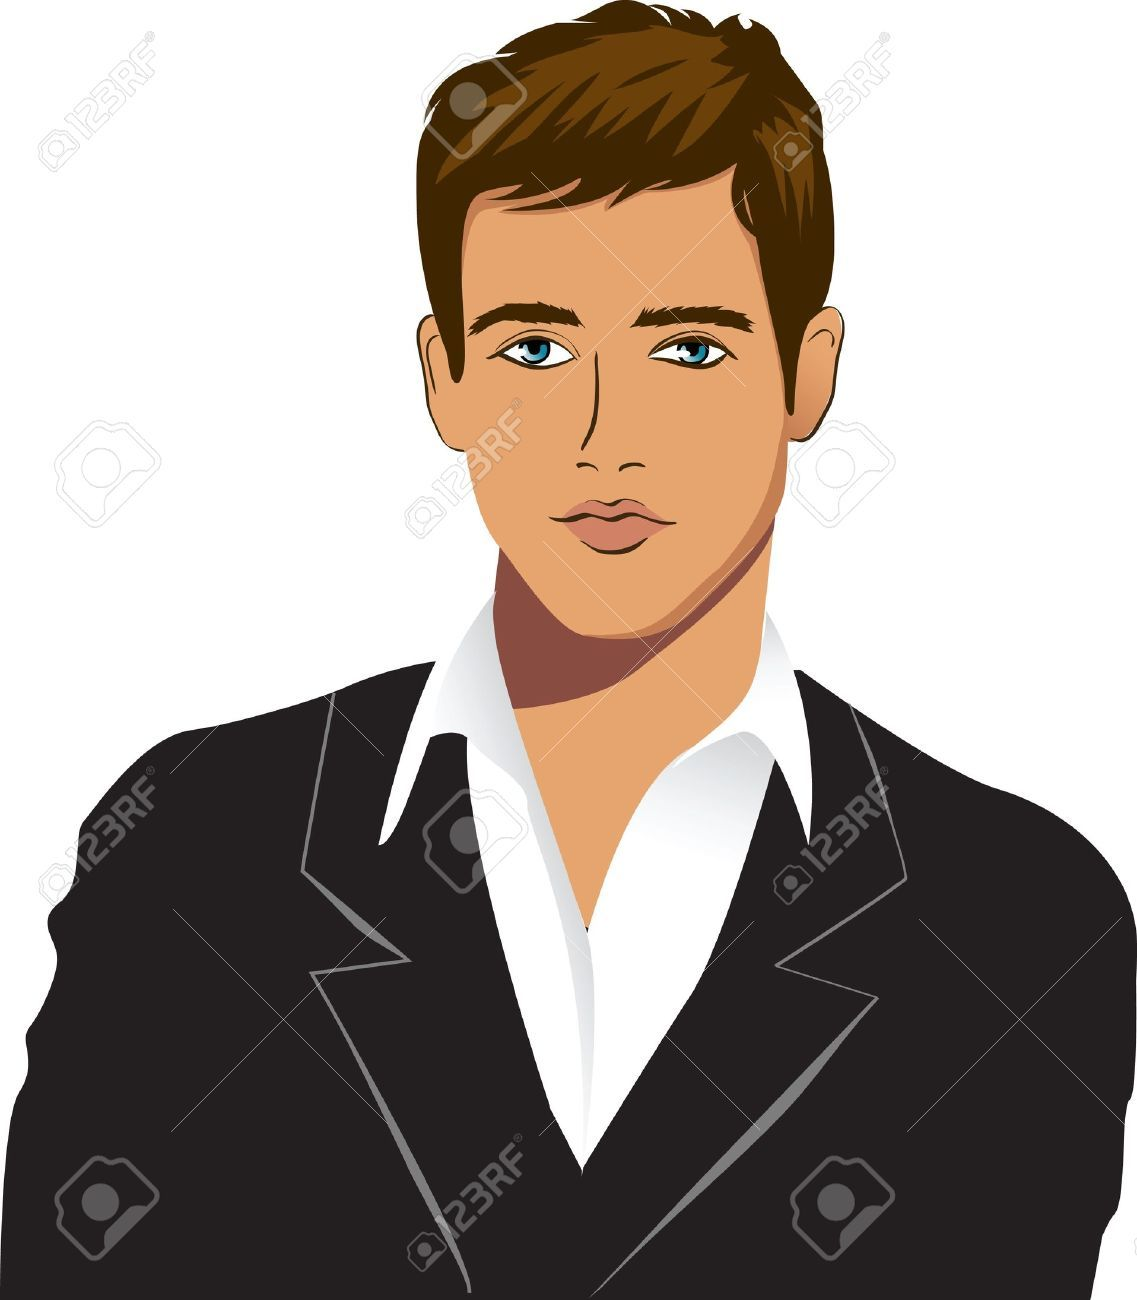 Kind clipart handsome.